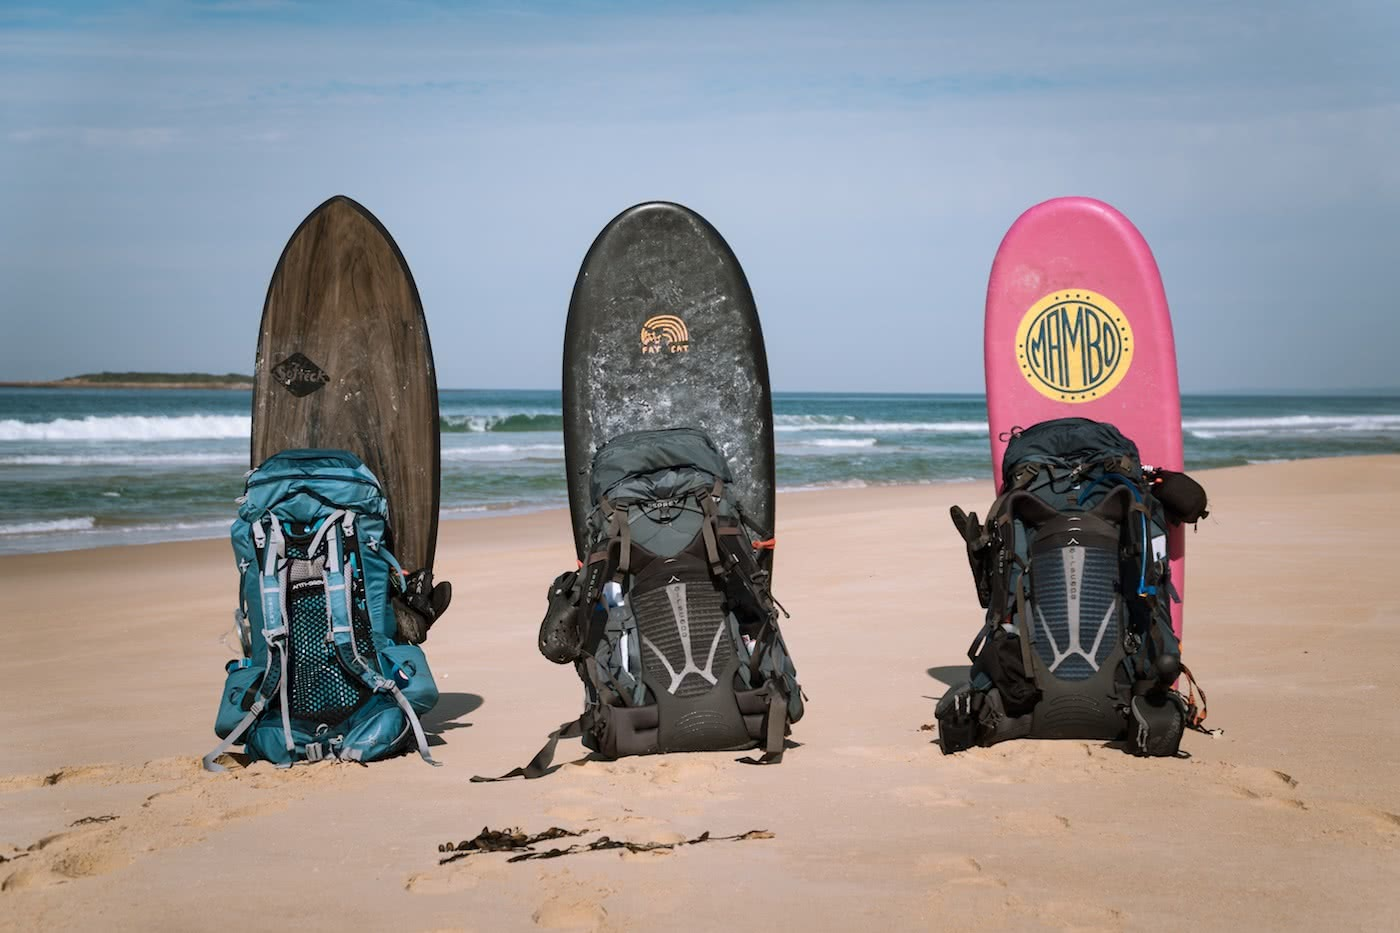 A Wilderness Surfari In Remote East Gippsland (VIC/NSW) by Jake, Sam and Georgia Doherty Osprey Adventure Grant, surf boards, beach, backpacks, waves